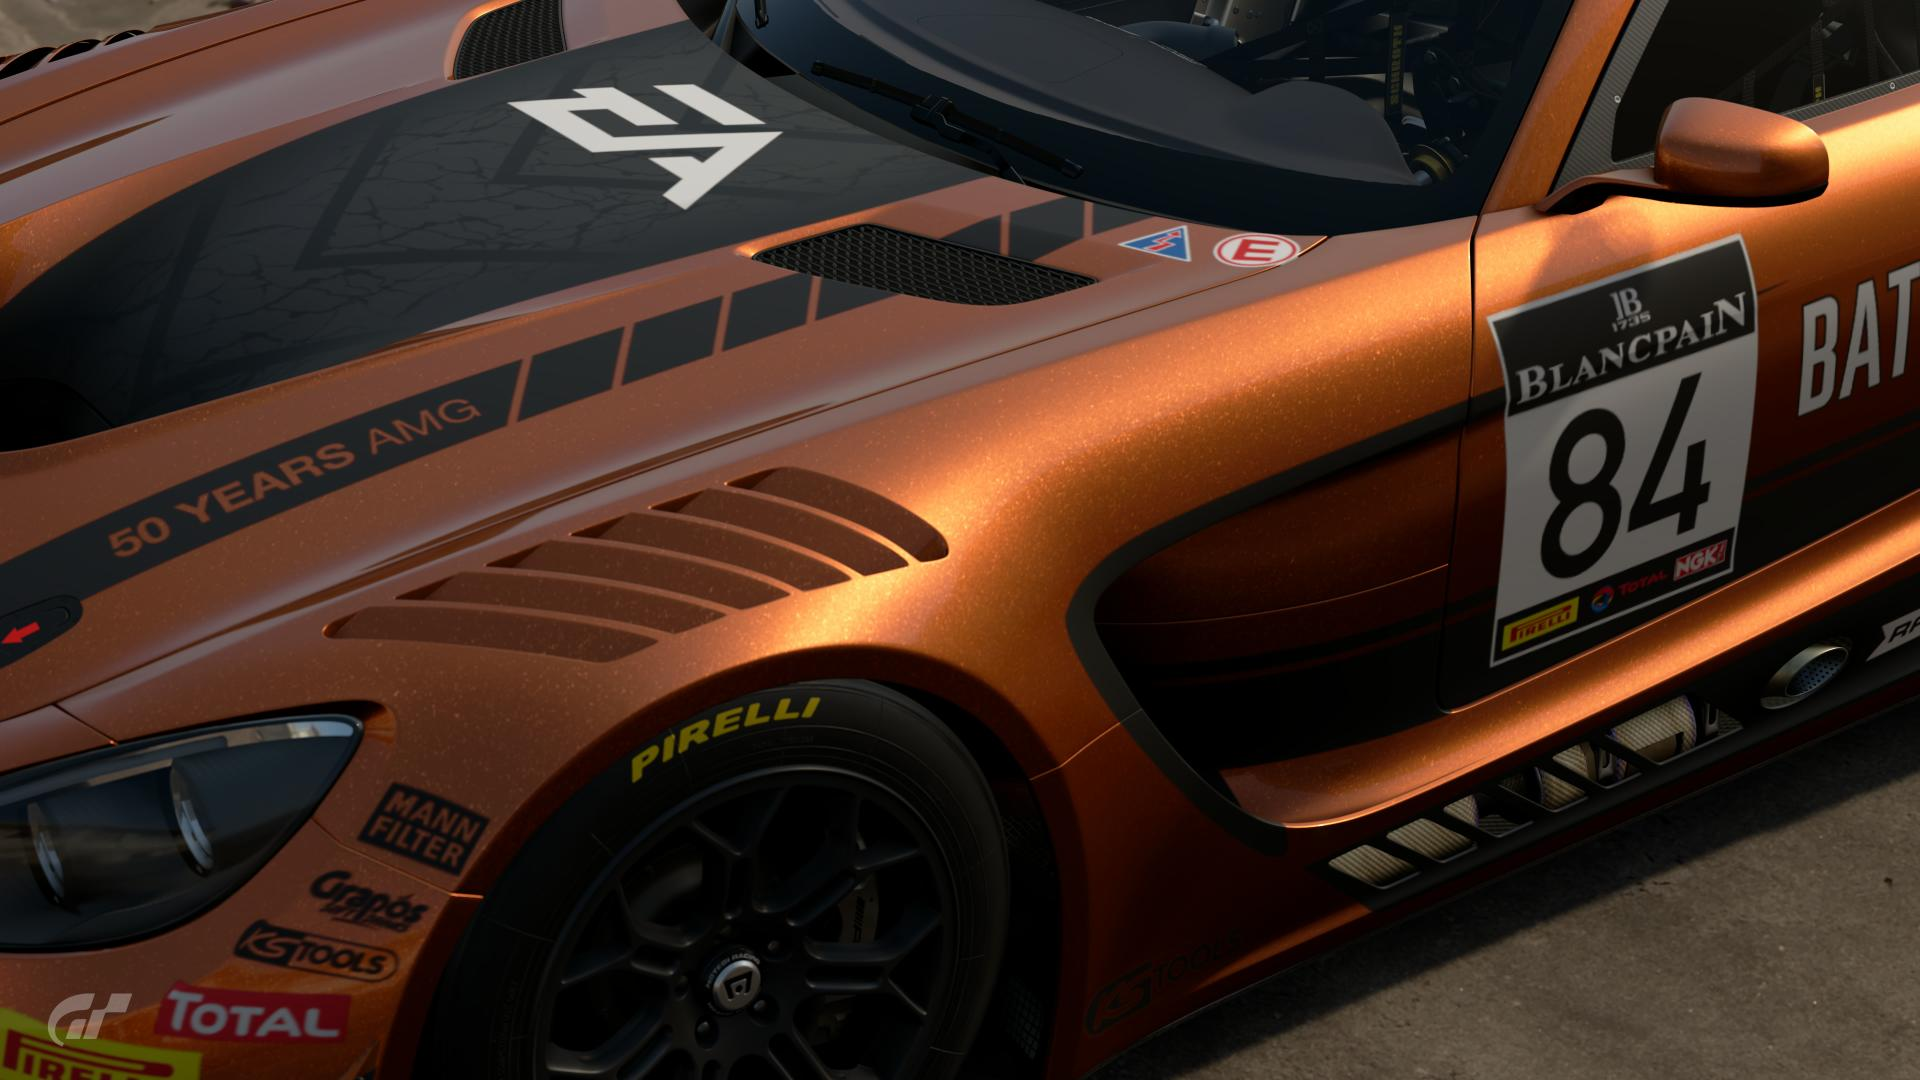 Mercedes-AMG GT Battlefield 1 - Scapes Photos by